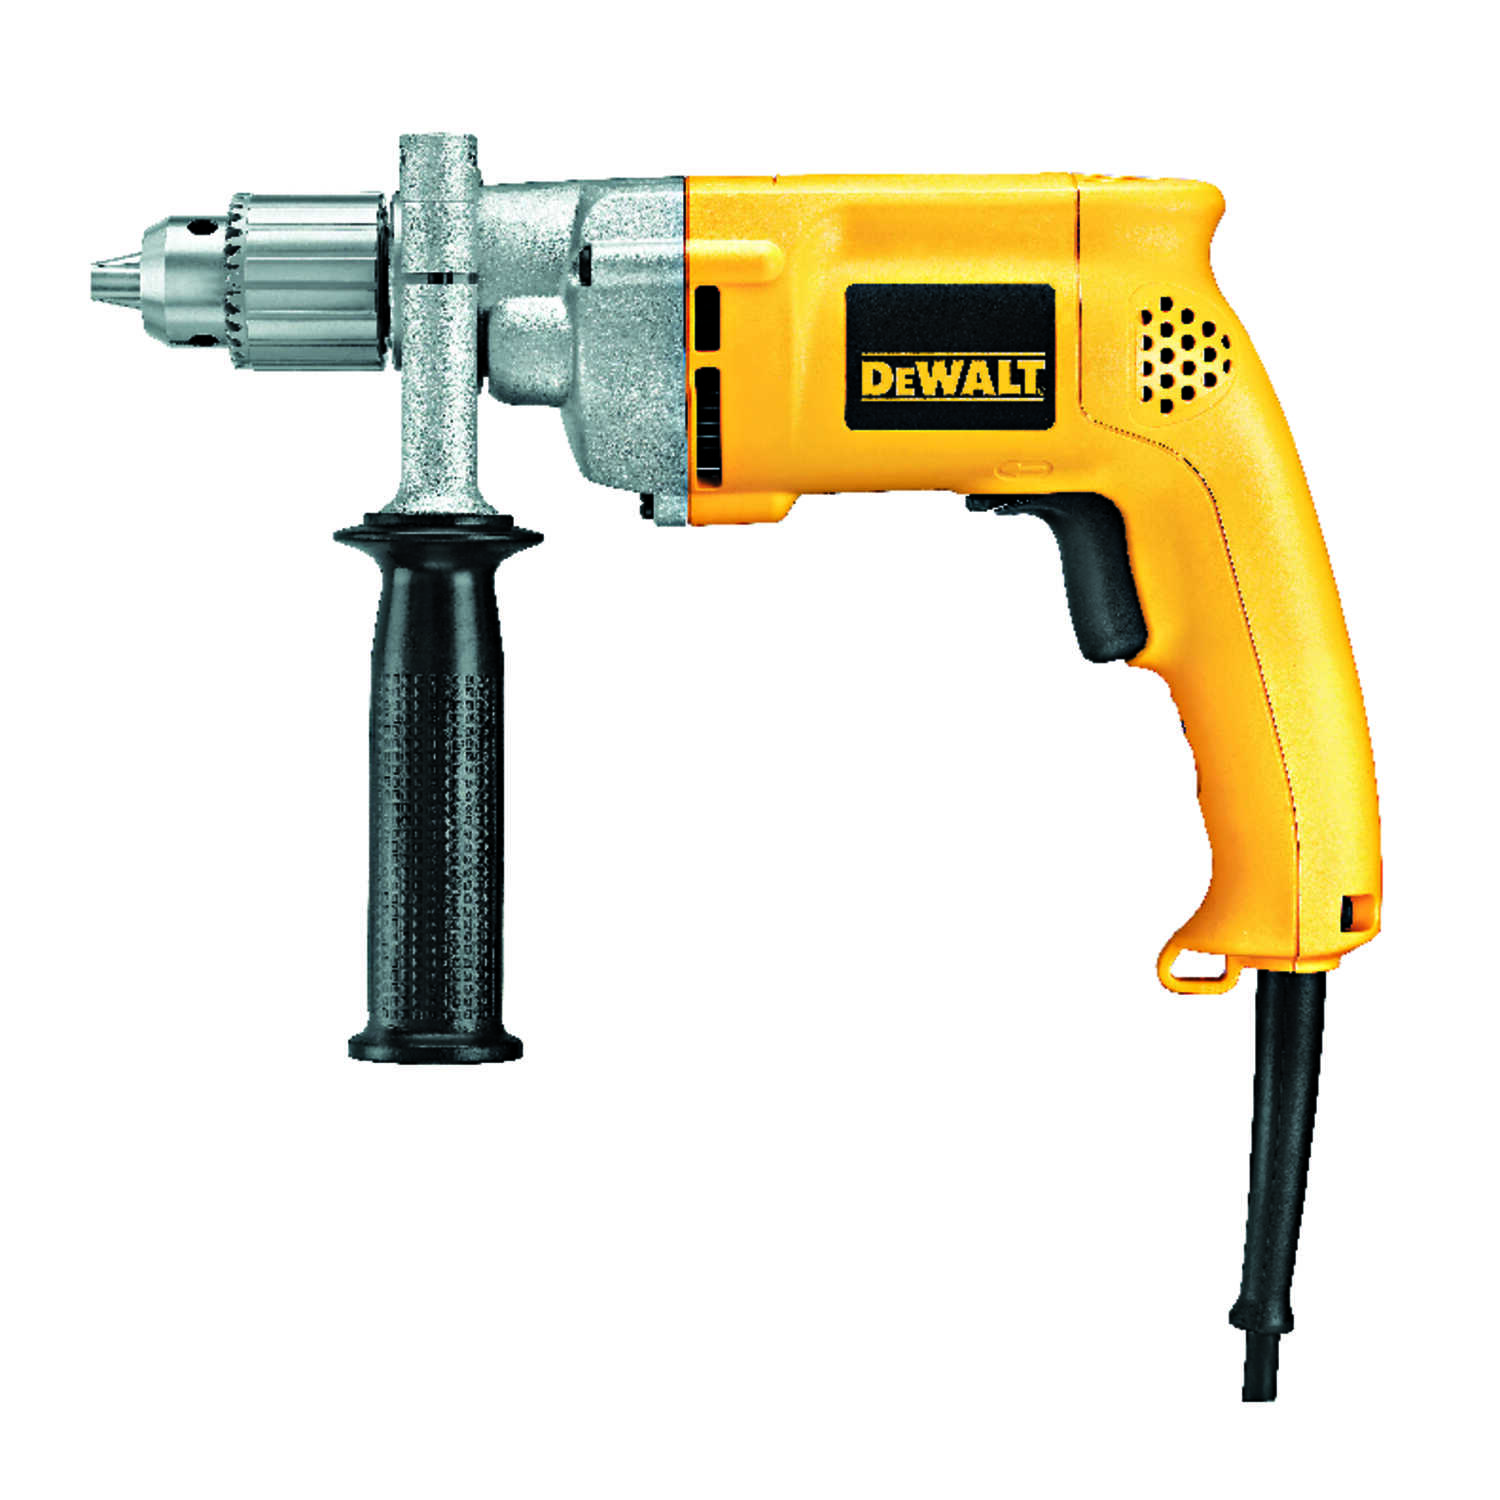 DeWalt  1/2 in. Keyed  VSR Corded Drill  8.5 amps 1000 rpm